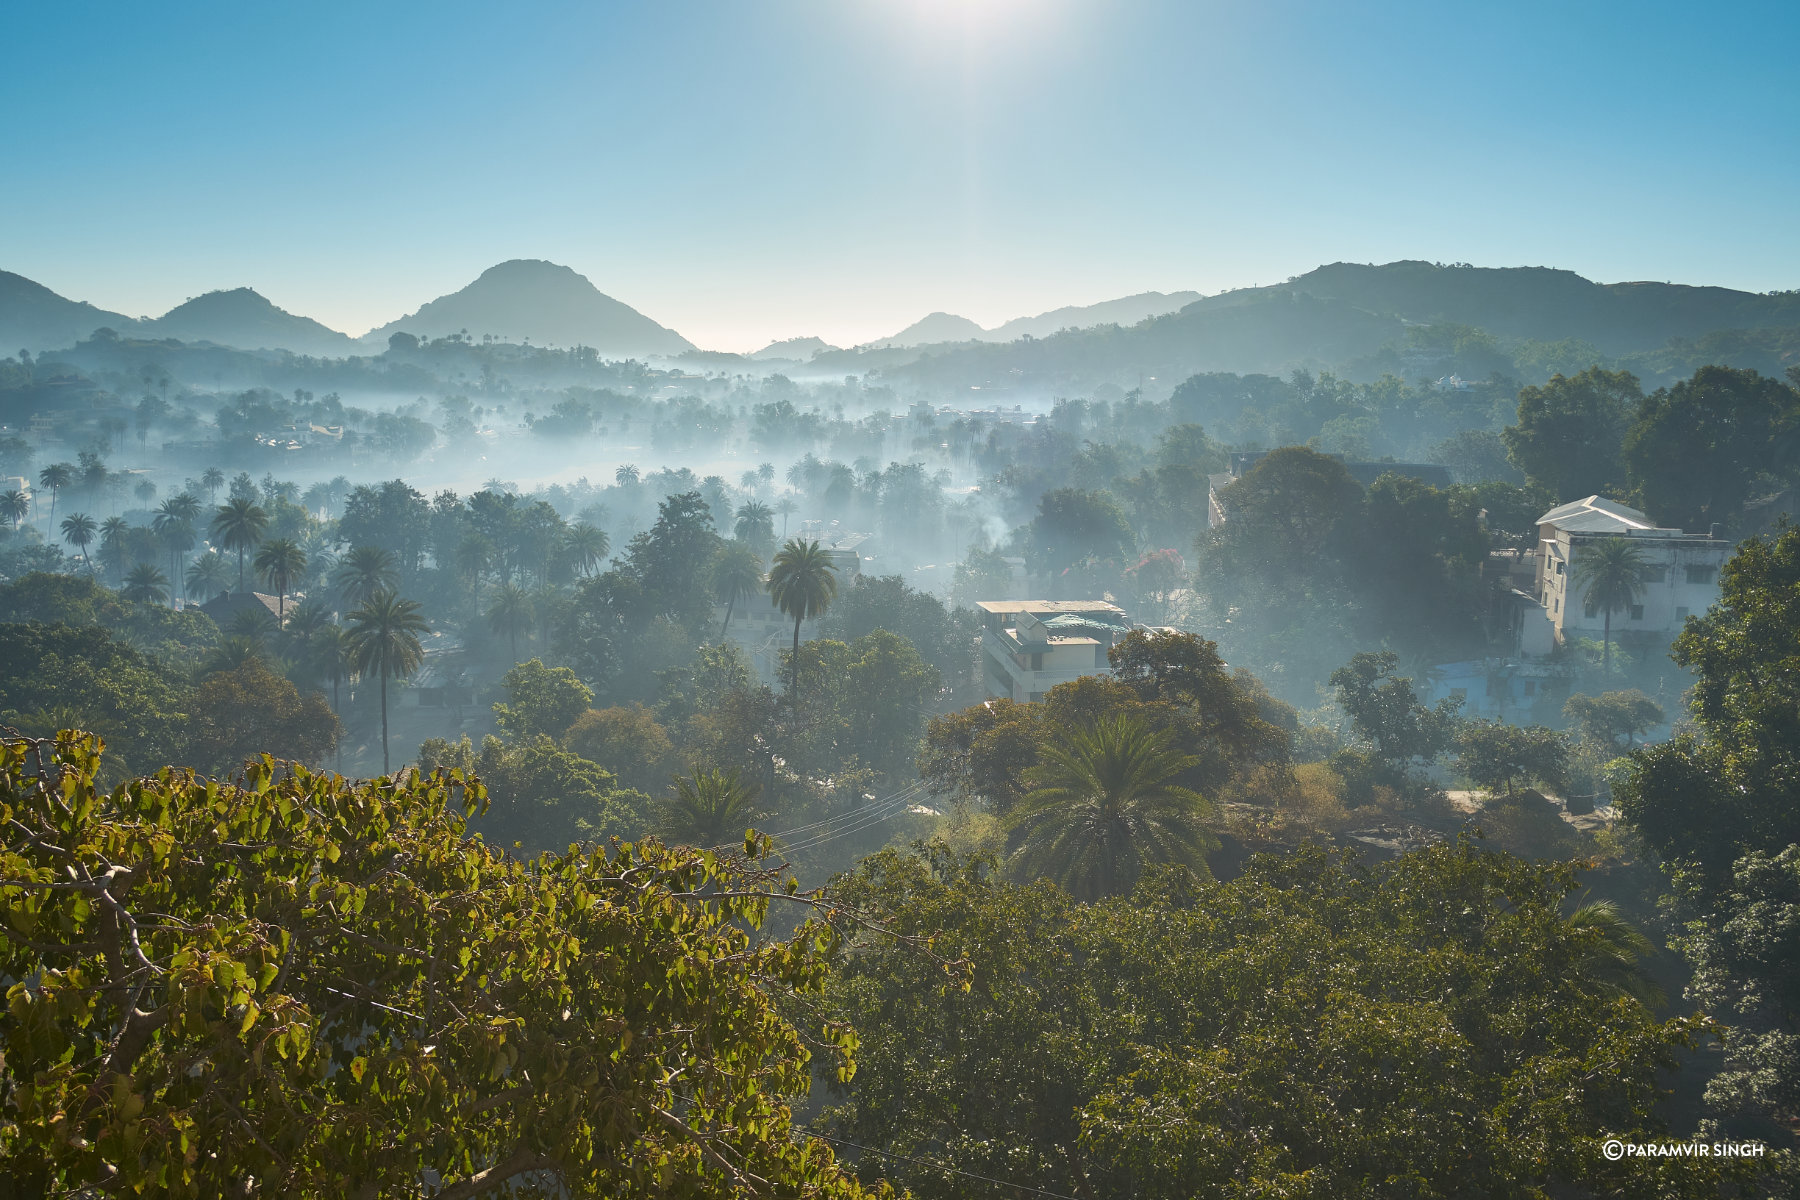 Mist over Mount Abu